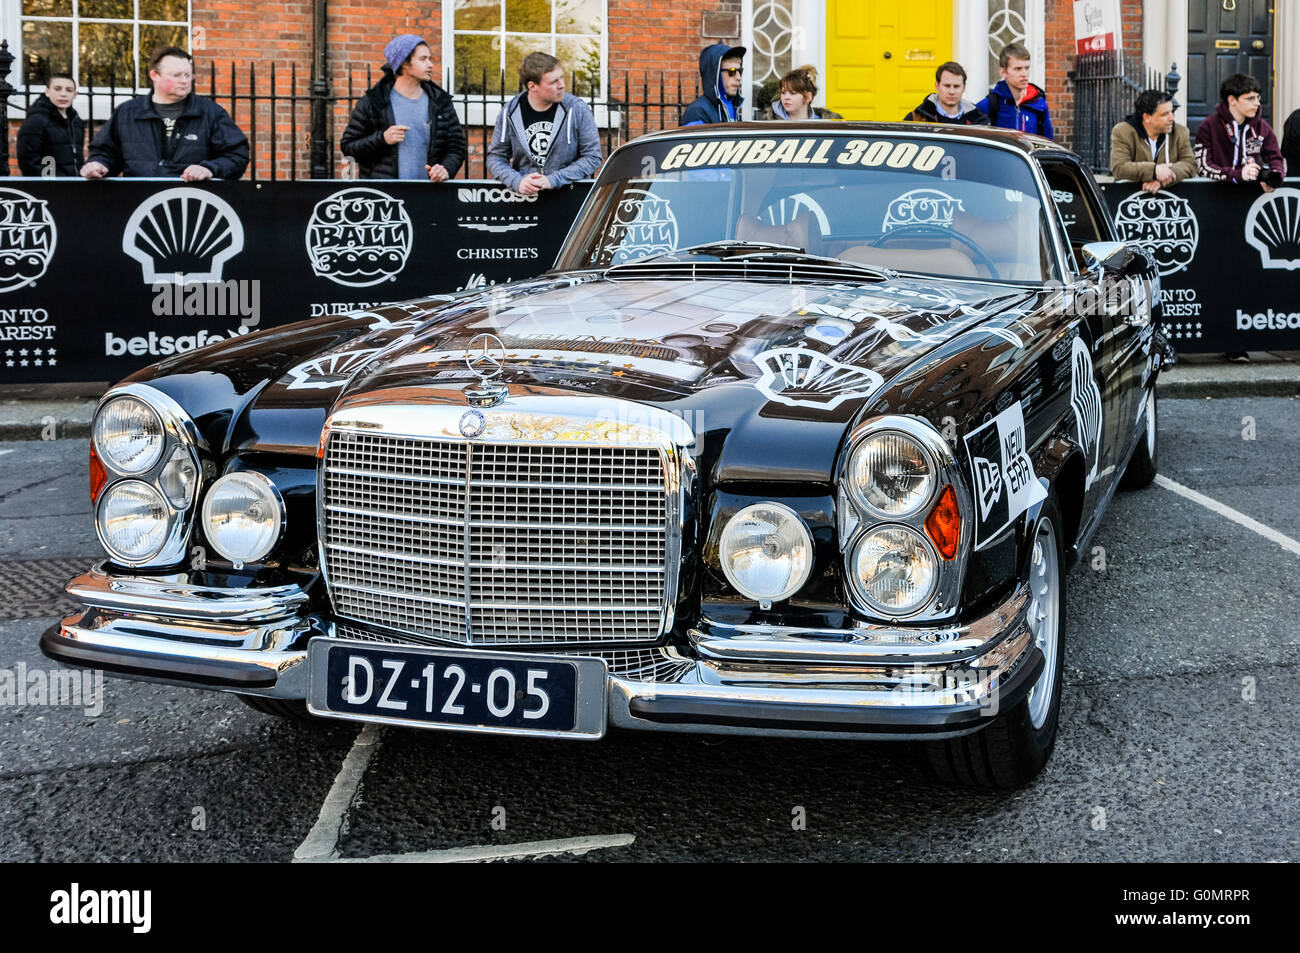 DUBLIN, IRELAND. MAY 01 2016 - A newly restored 1970 Mercedes 250 Coupe (with a 5.5l engine) waits for the start - Stock Image